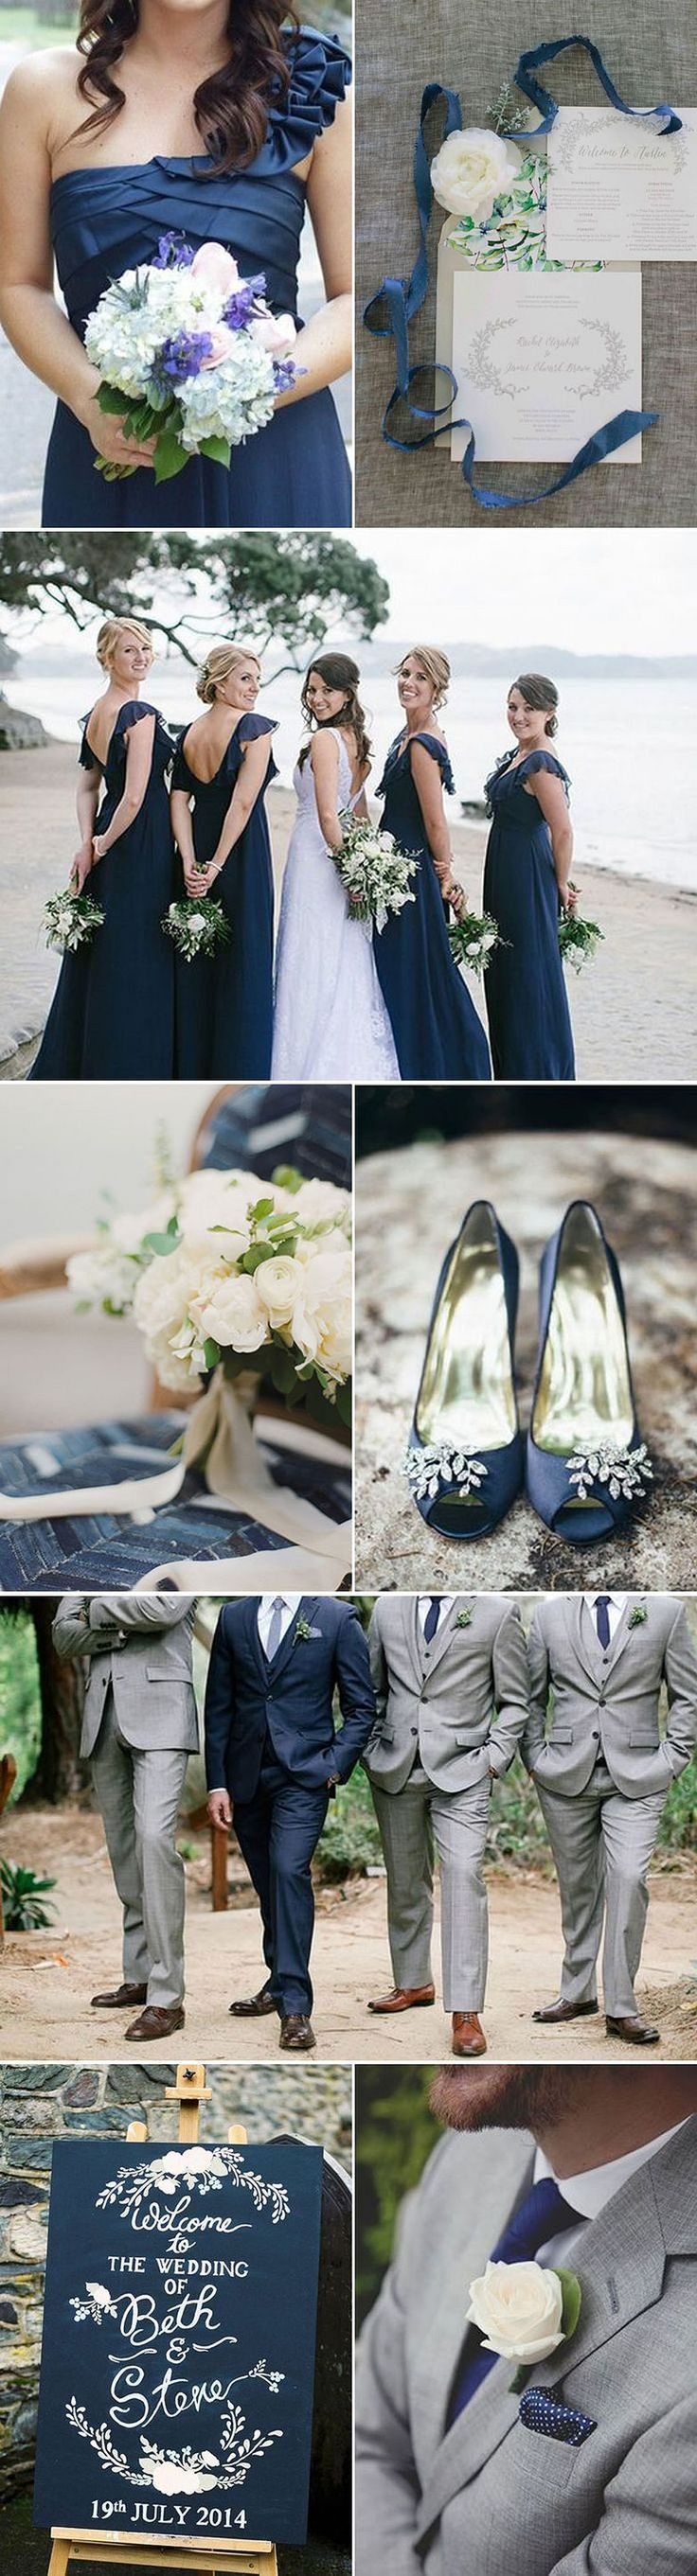 108 Navy Blue Wedding Theme Ideas Pinterest Navy Blue Wedding